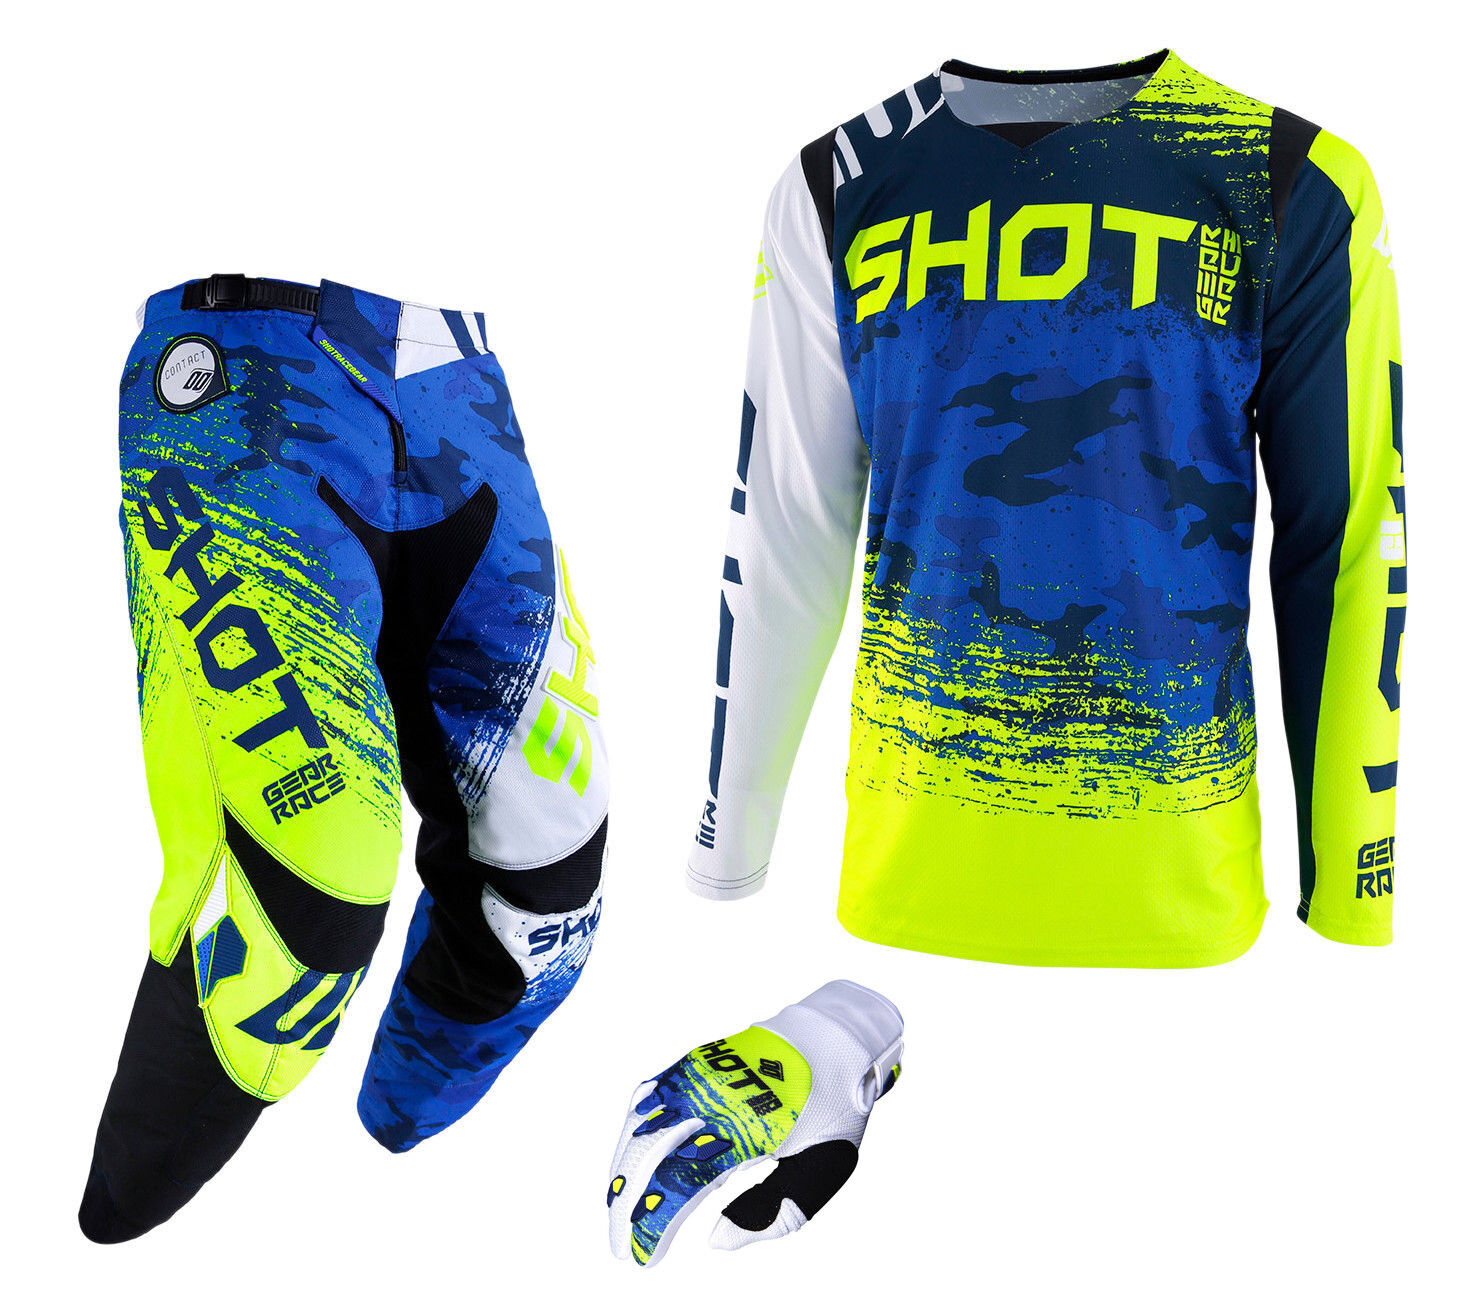 2019 SHOT COUNTER PANT & JERSEY MTB BMX  DOWNHILL DH COMBO KIT CAMO blueE YELLOW  convenient